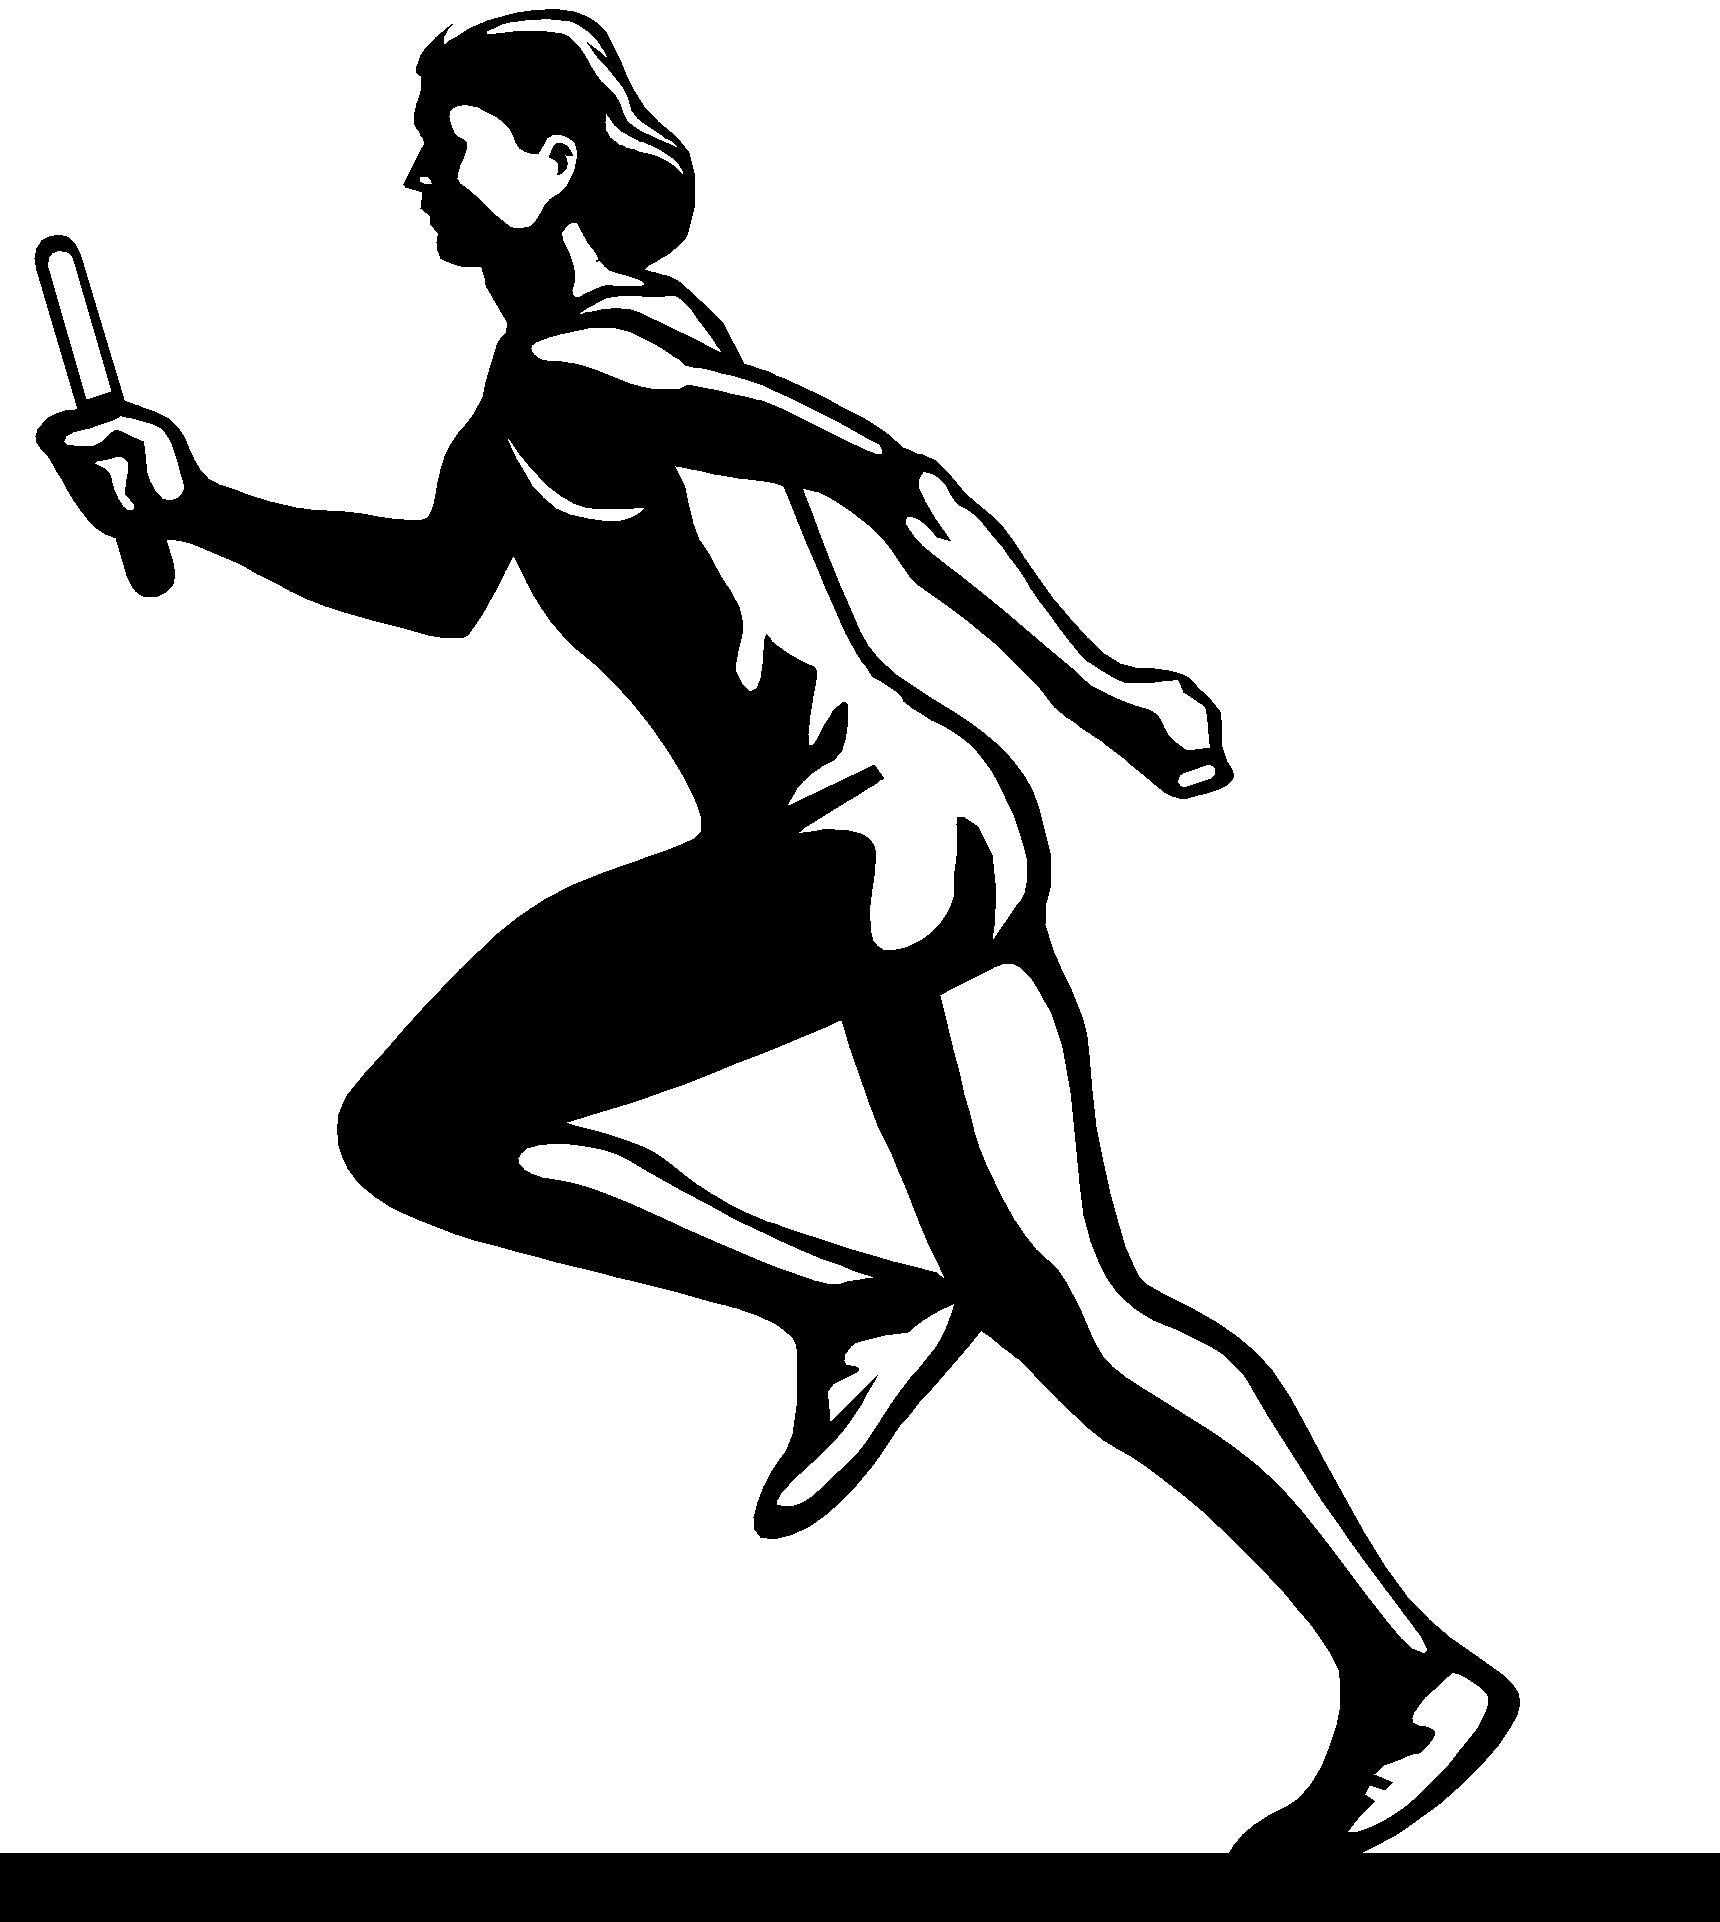 1720x1922 Track And Field Clip Art The Cliparts 2 Track And Field